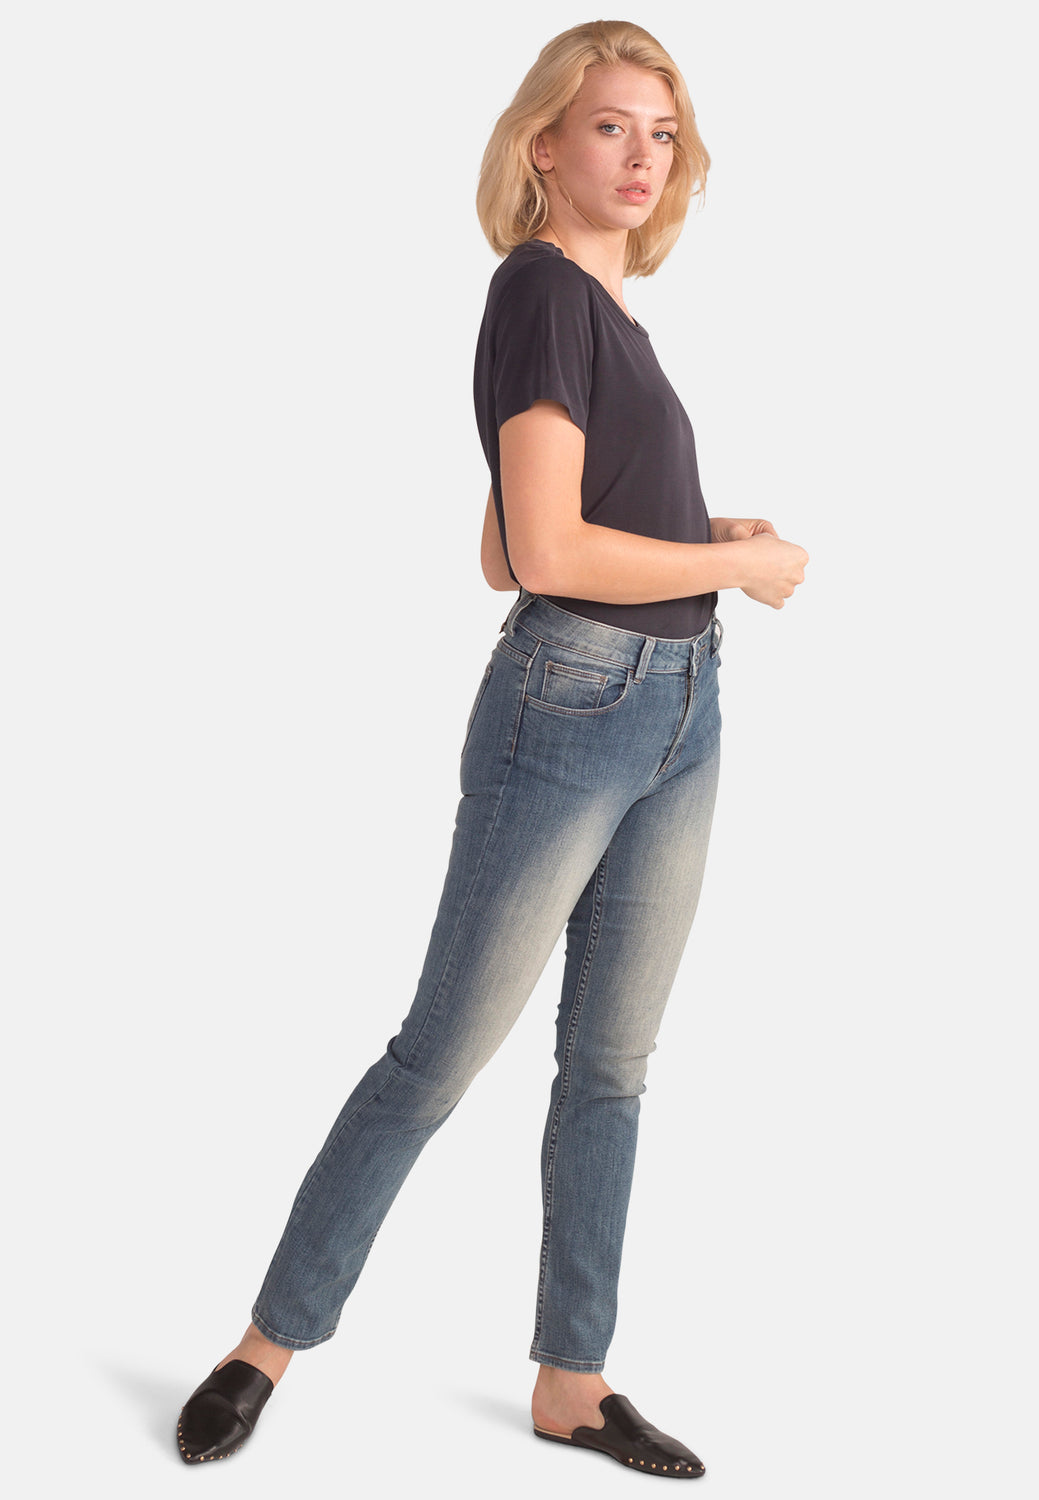 EMILY // Organic Slim Fit Jeans in Mid Wash - Monkee Genes Organic Jeans Denim - Women's Slim Fit Monkee Genes Official  Monkee Genes Official